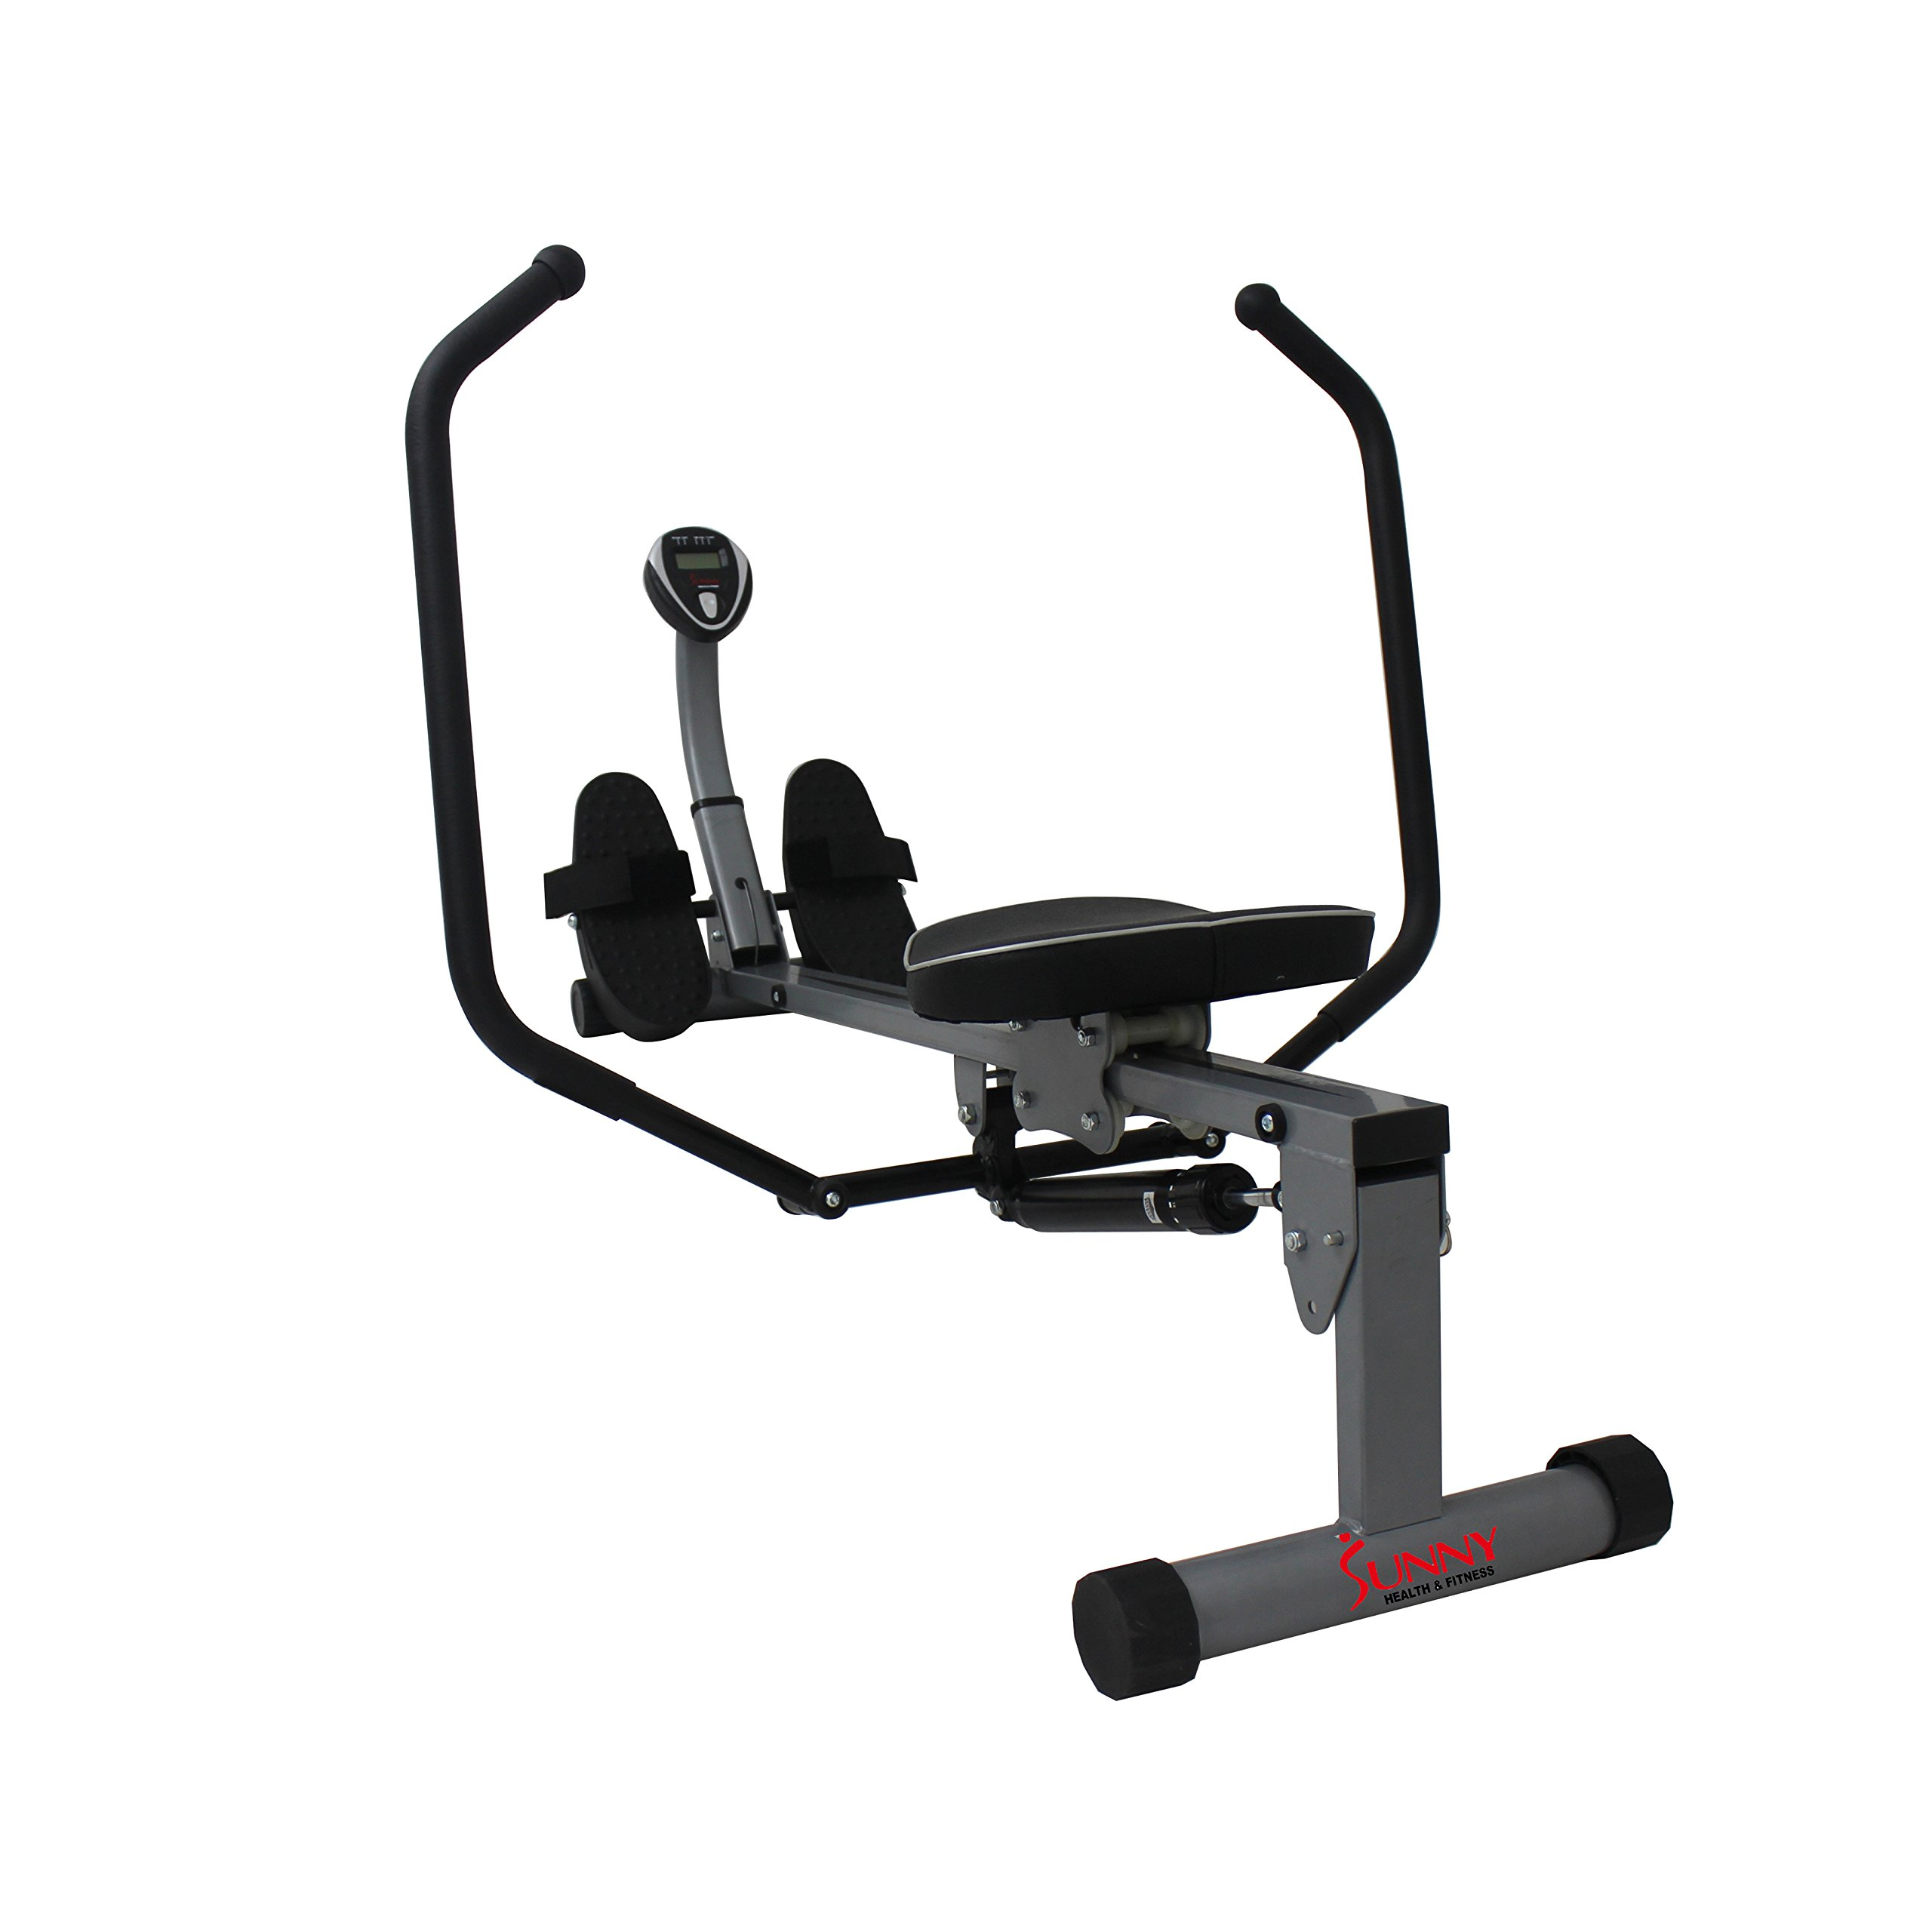 Sunny Health & Fitness SF-RW1410 Rowing Machine Rower with Full Motion Arms and LCD Monitor by Sunny Health & Fitness (Image #9)